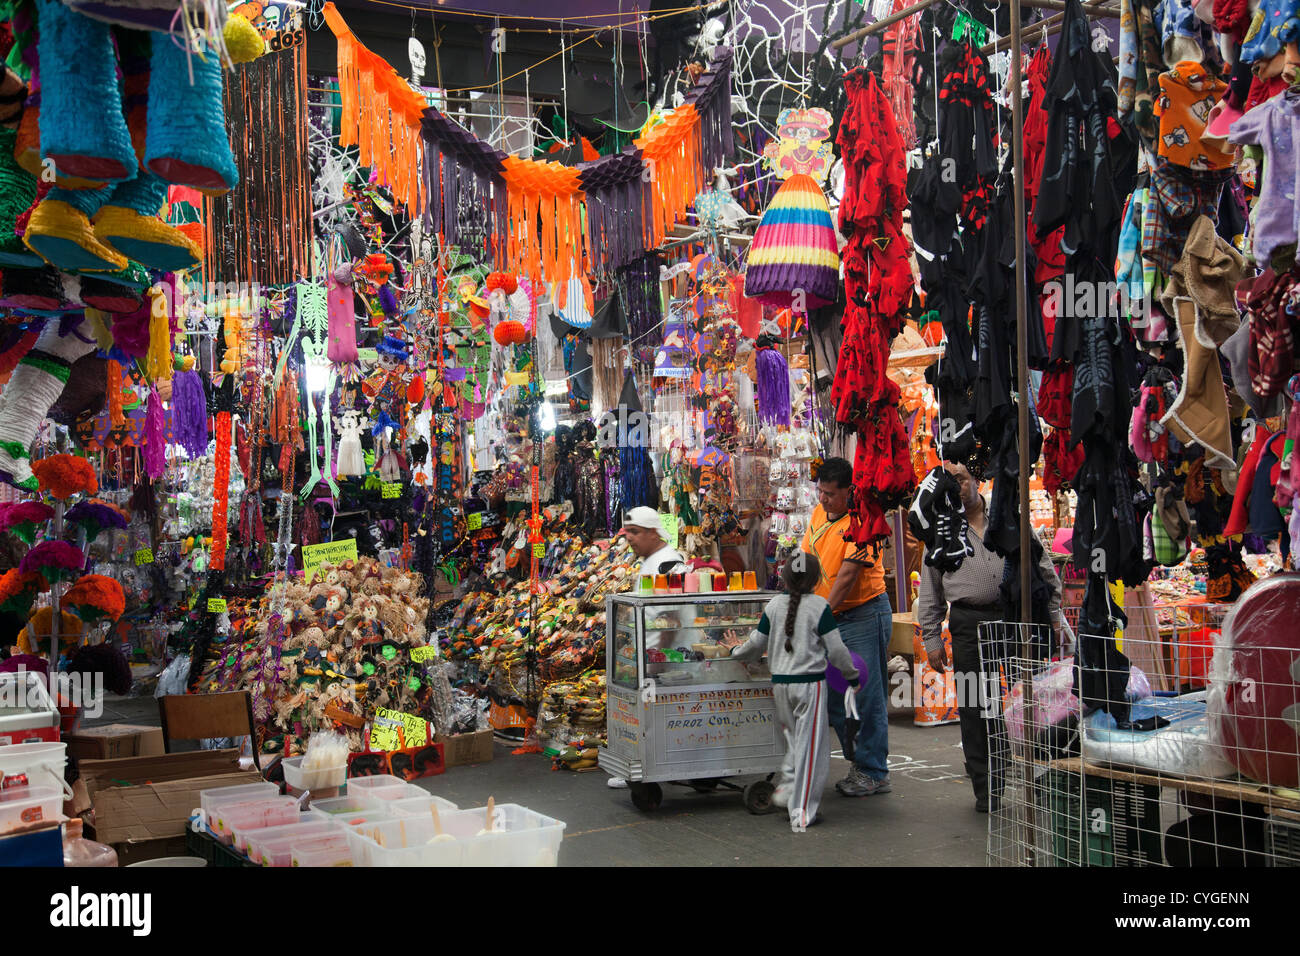 merchandise for halloween and da de los muertos at a stall in jamaica market in mexico city df